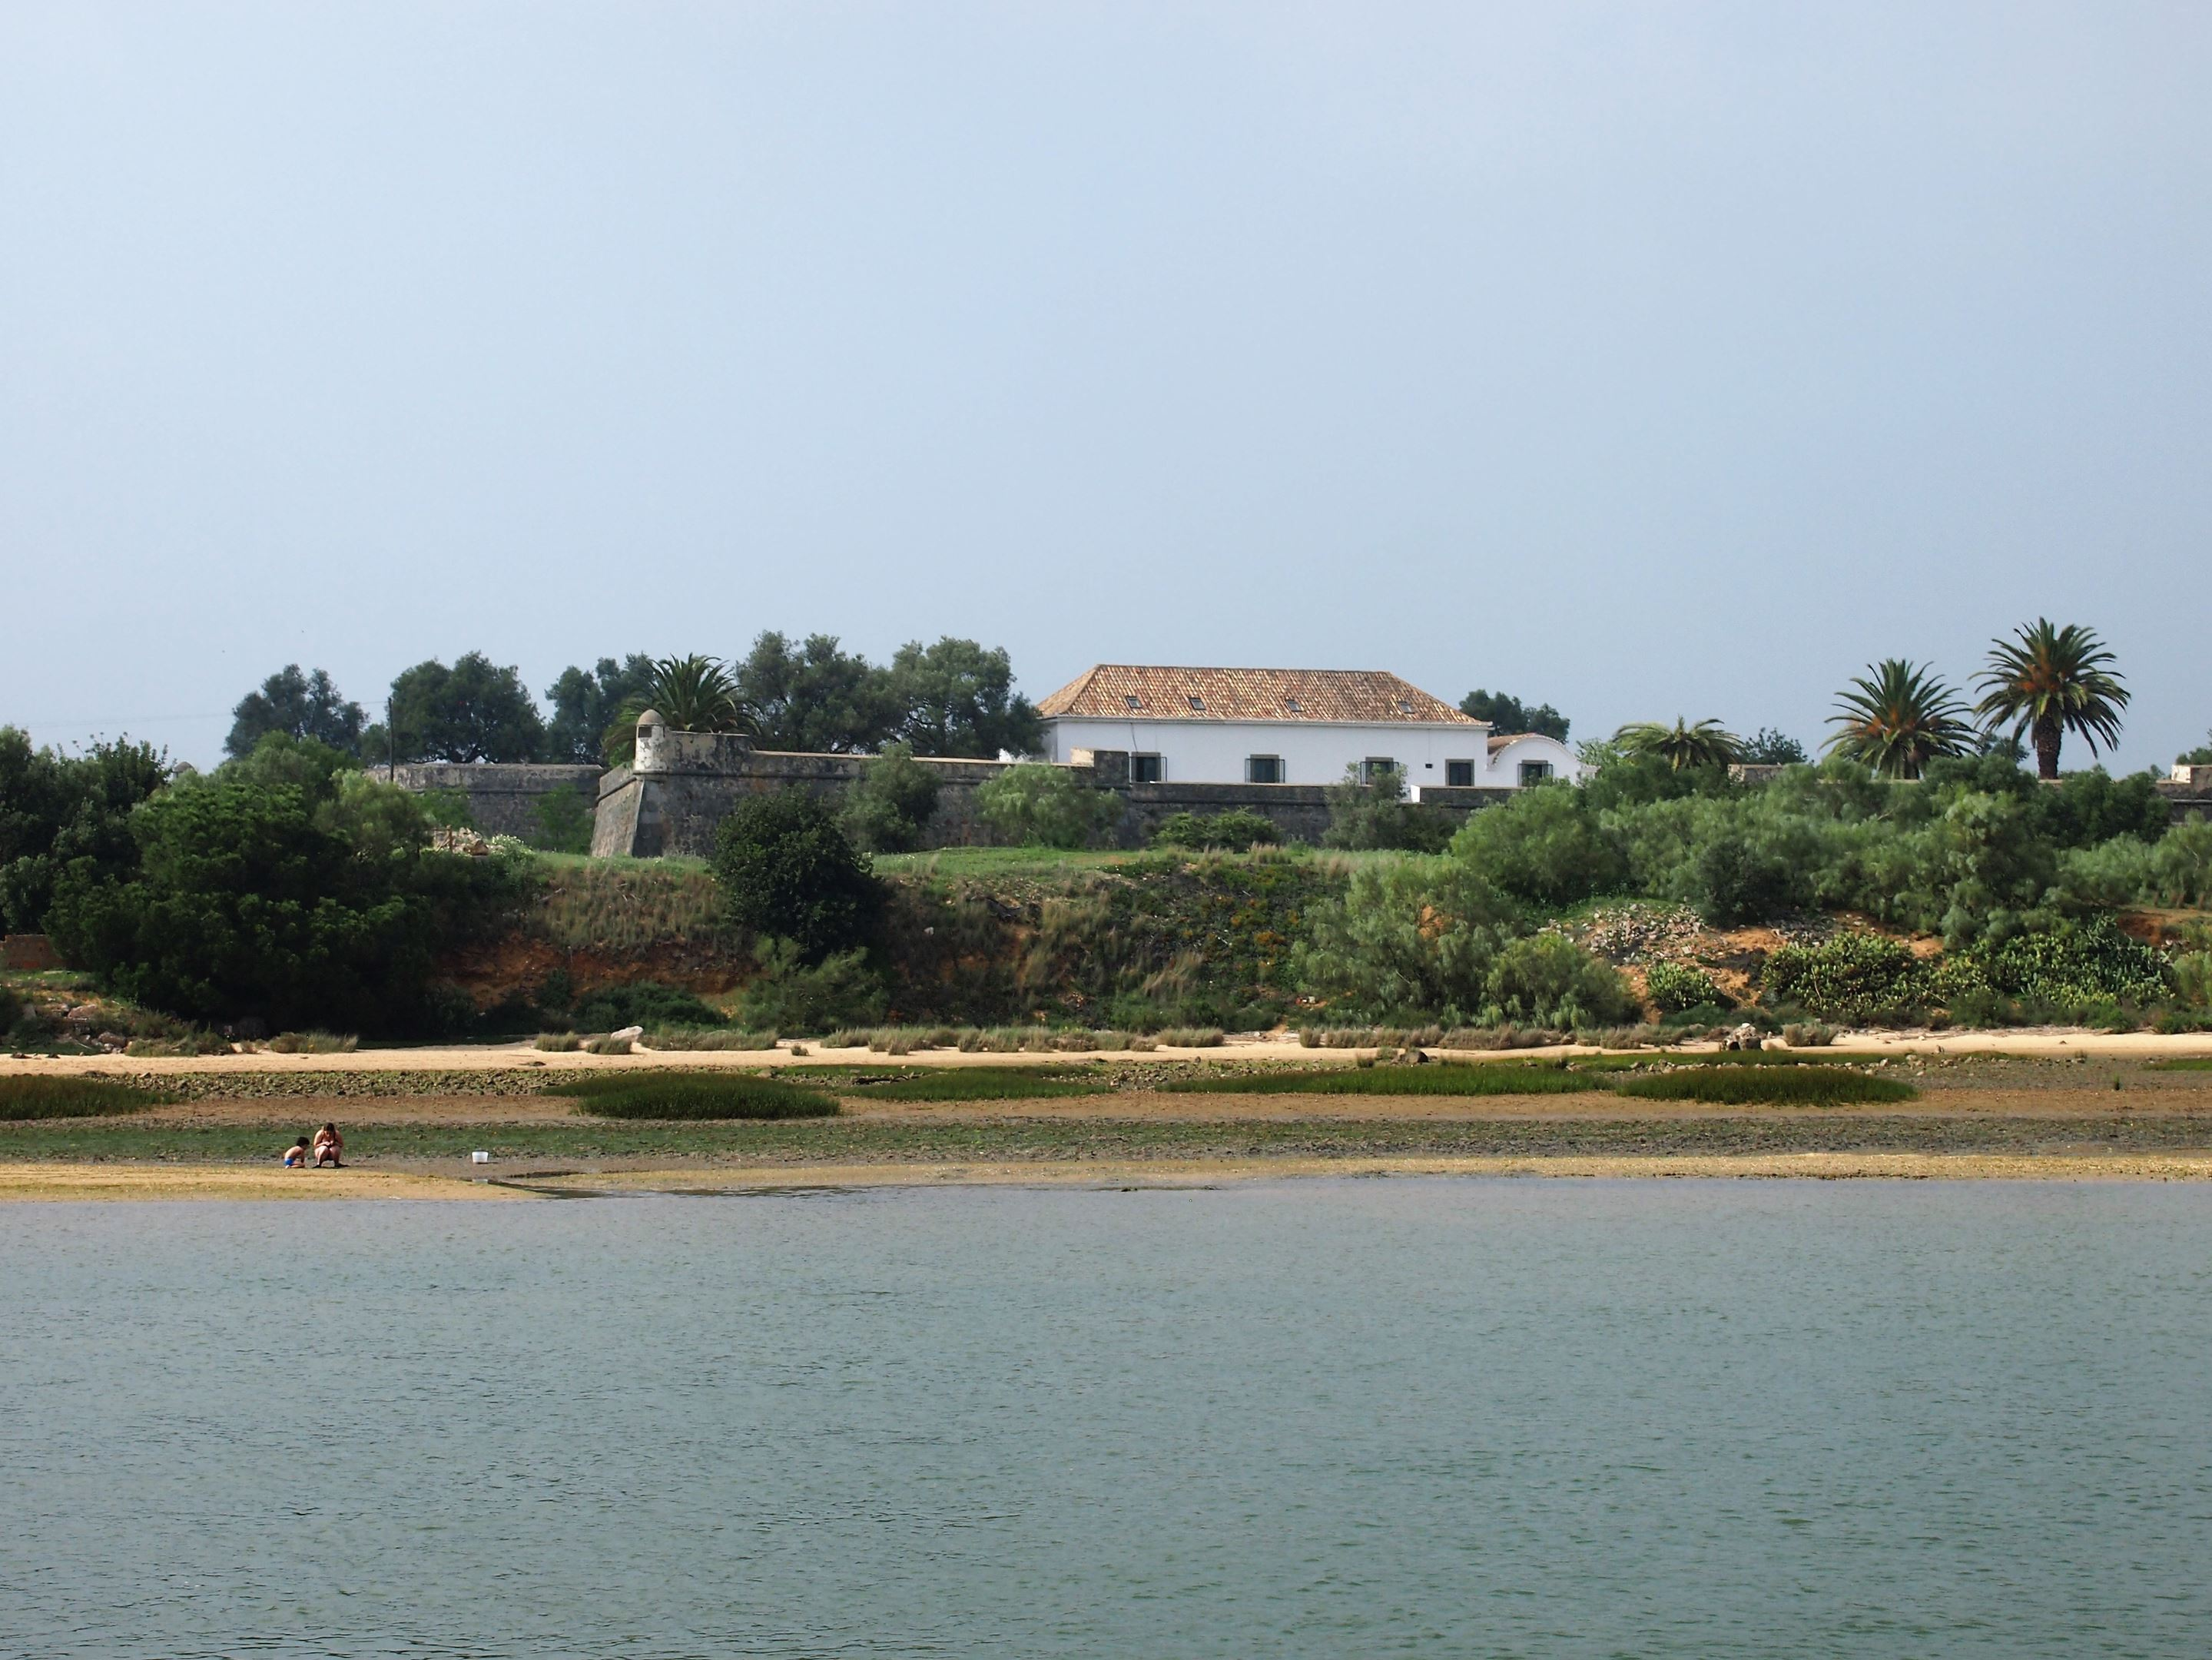 The Fort of São João da Barra, Tavira - now a hotel